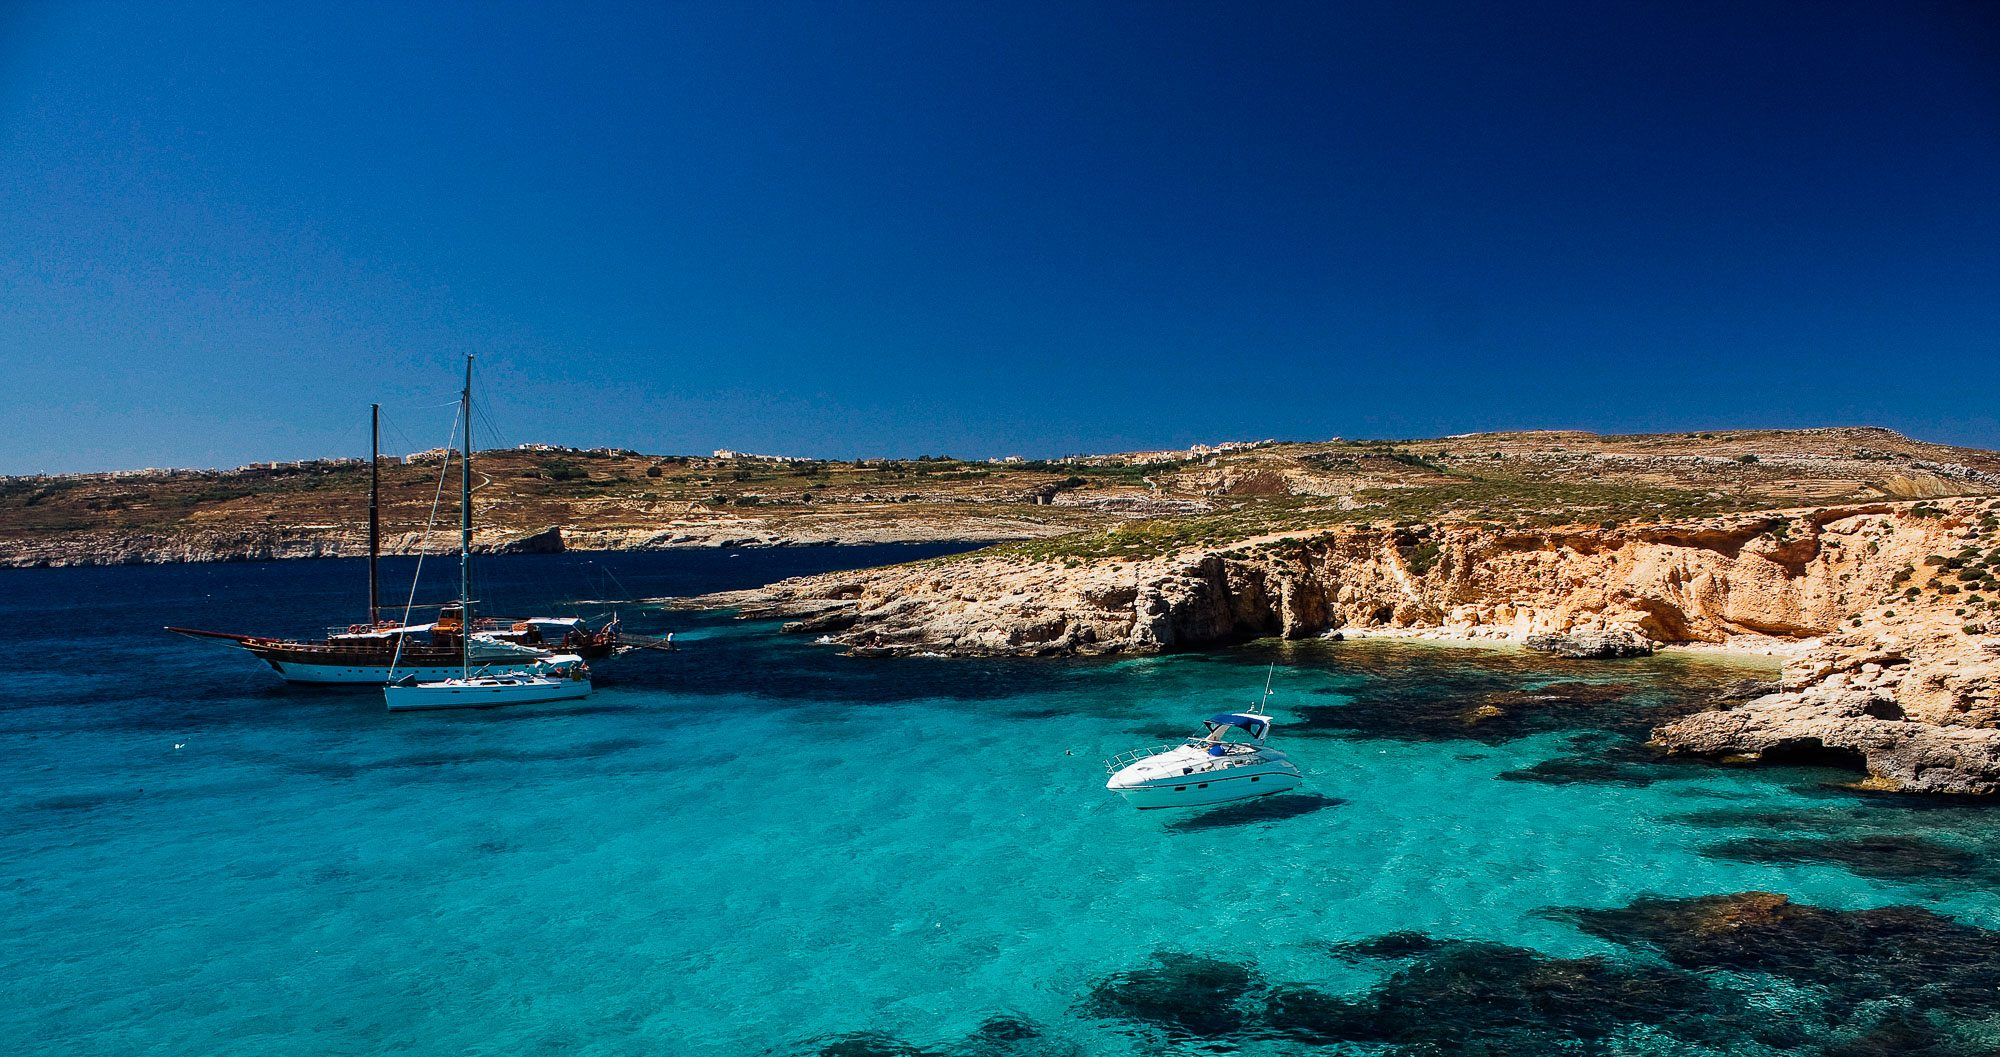 Malta's Comino Blue Lagoon needs to be seen to be truly appreciated by those on a sports tour